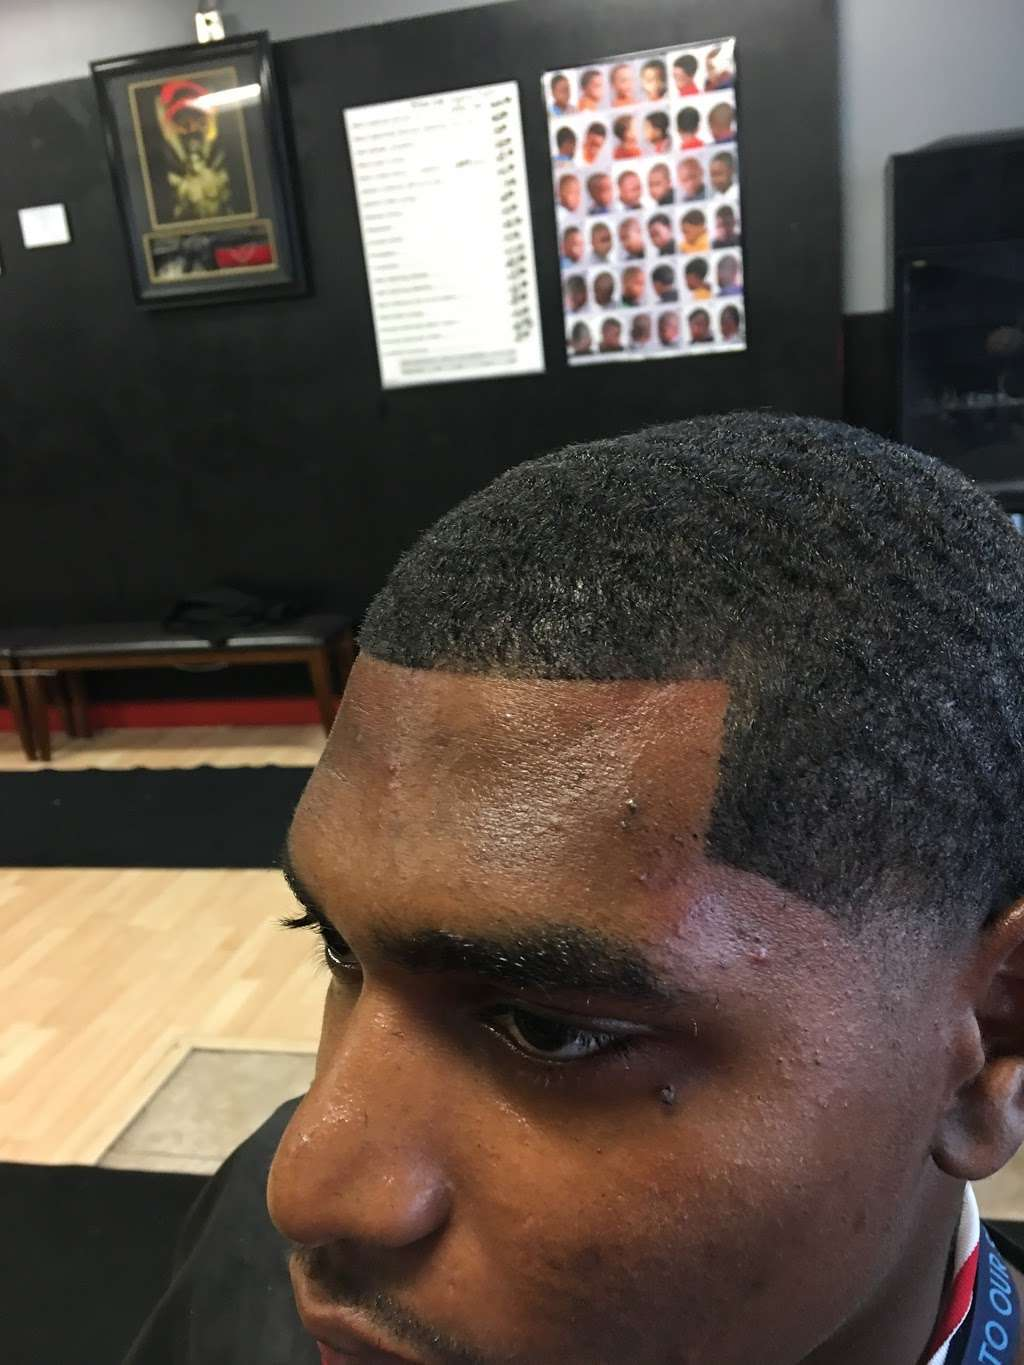 Hair Mechanx Barber & Beauty Salon LLC - hair care  | Photo 4 of 10 | Address: 8716 E 21st St, Indianapolis, IN 46219, USA | Phone: (317) 572-0340